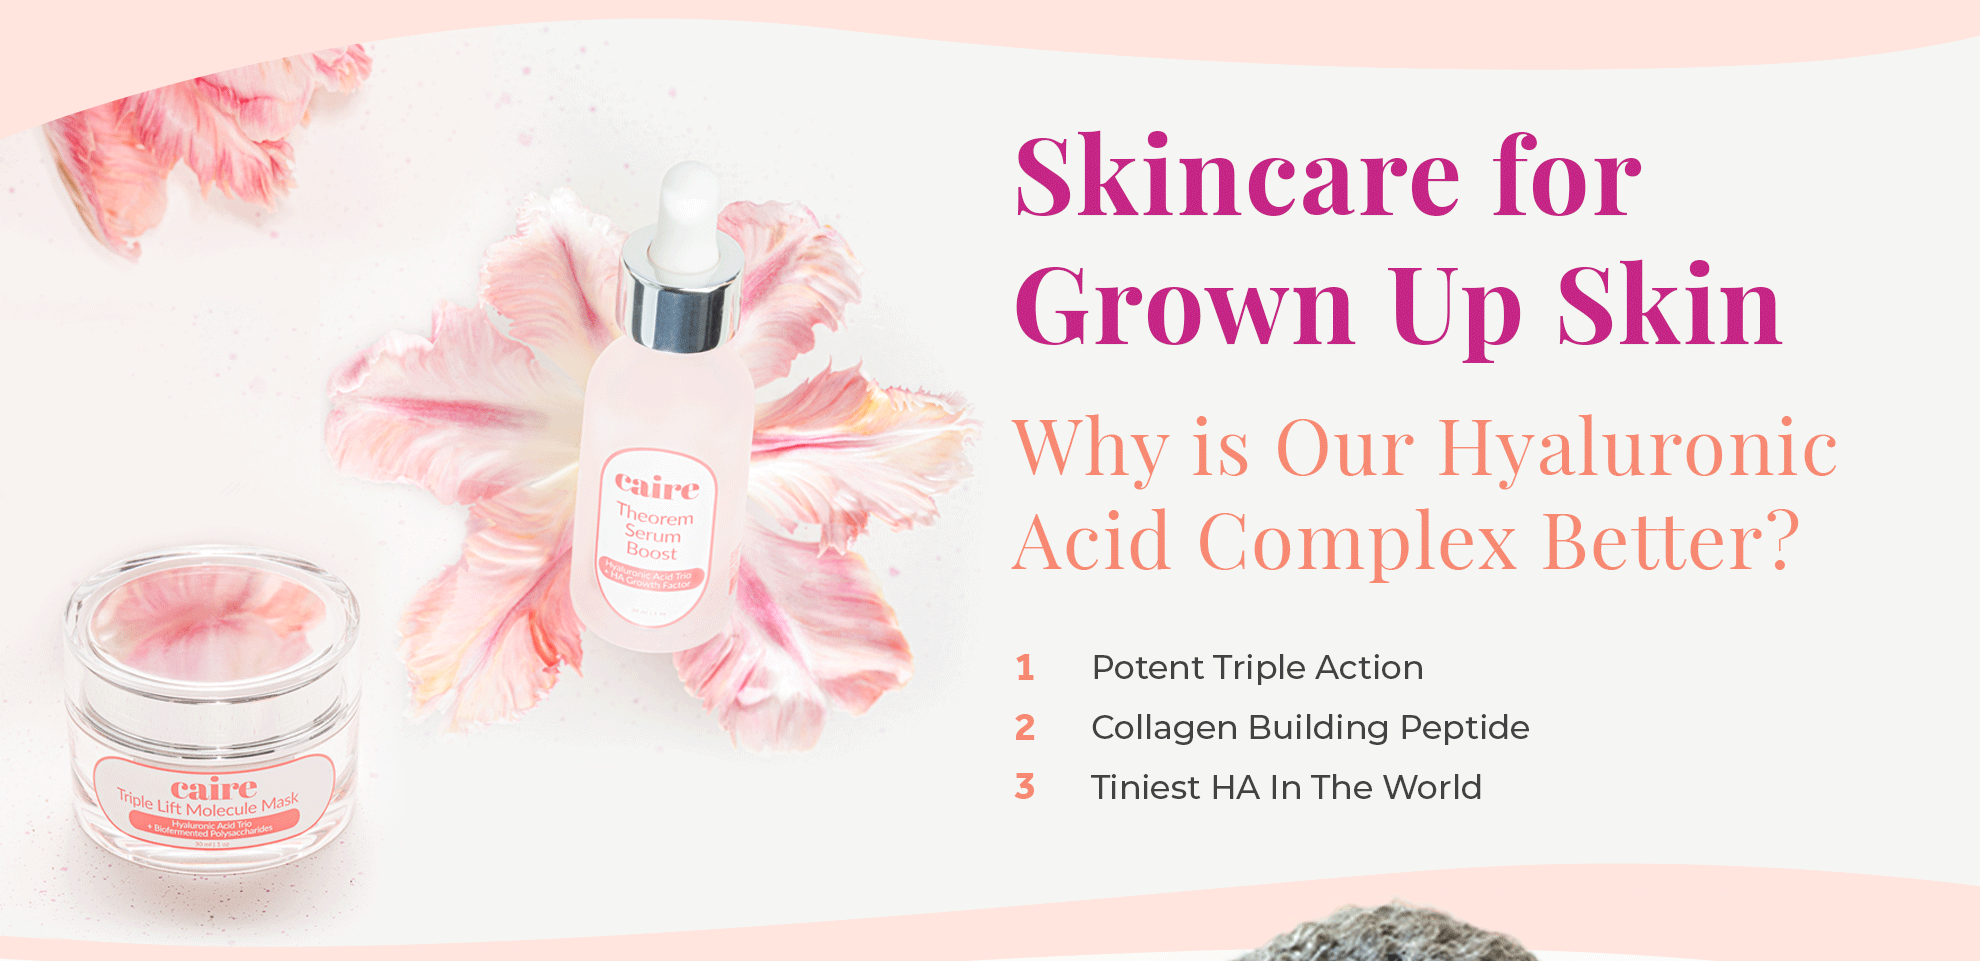 Skincare for Grown Up Skin